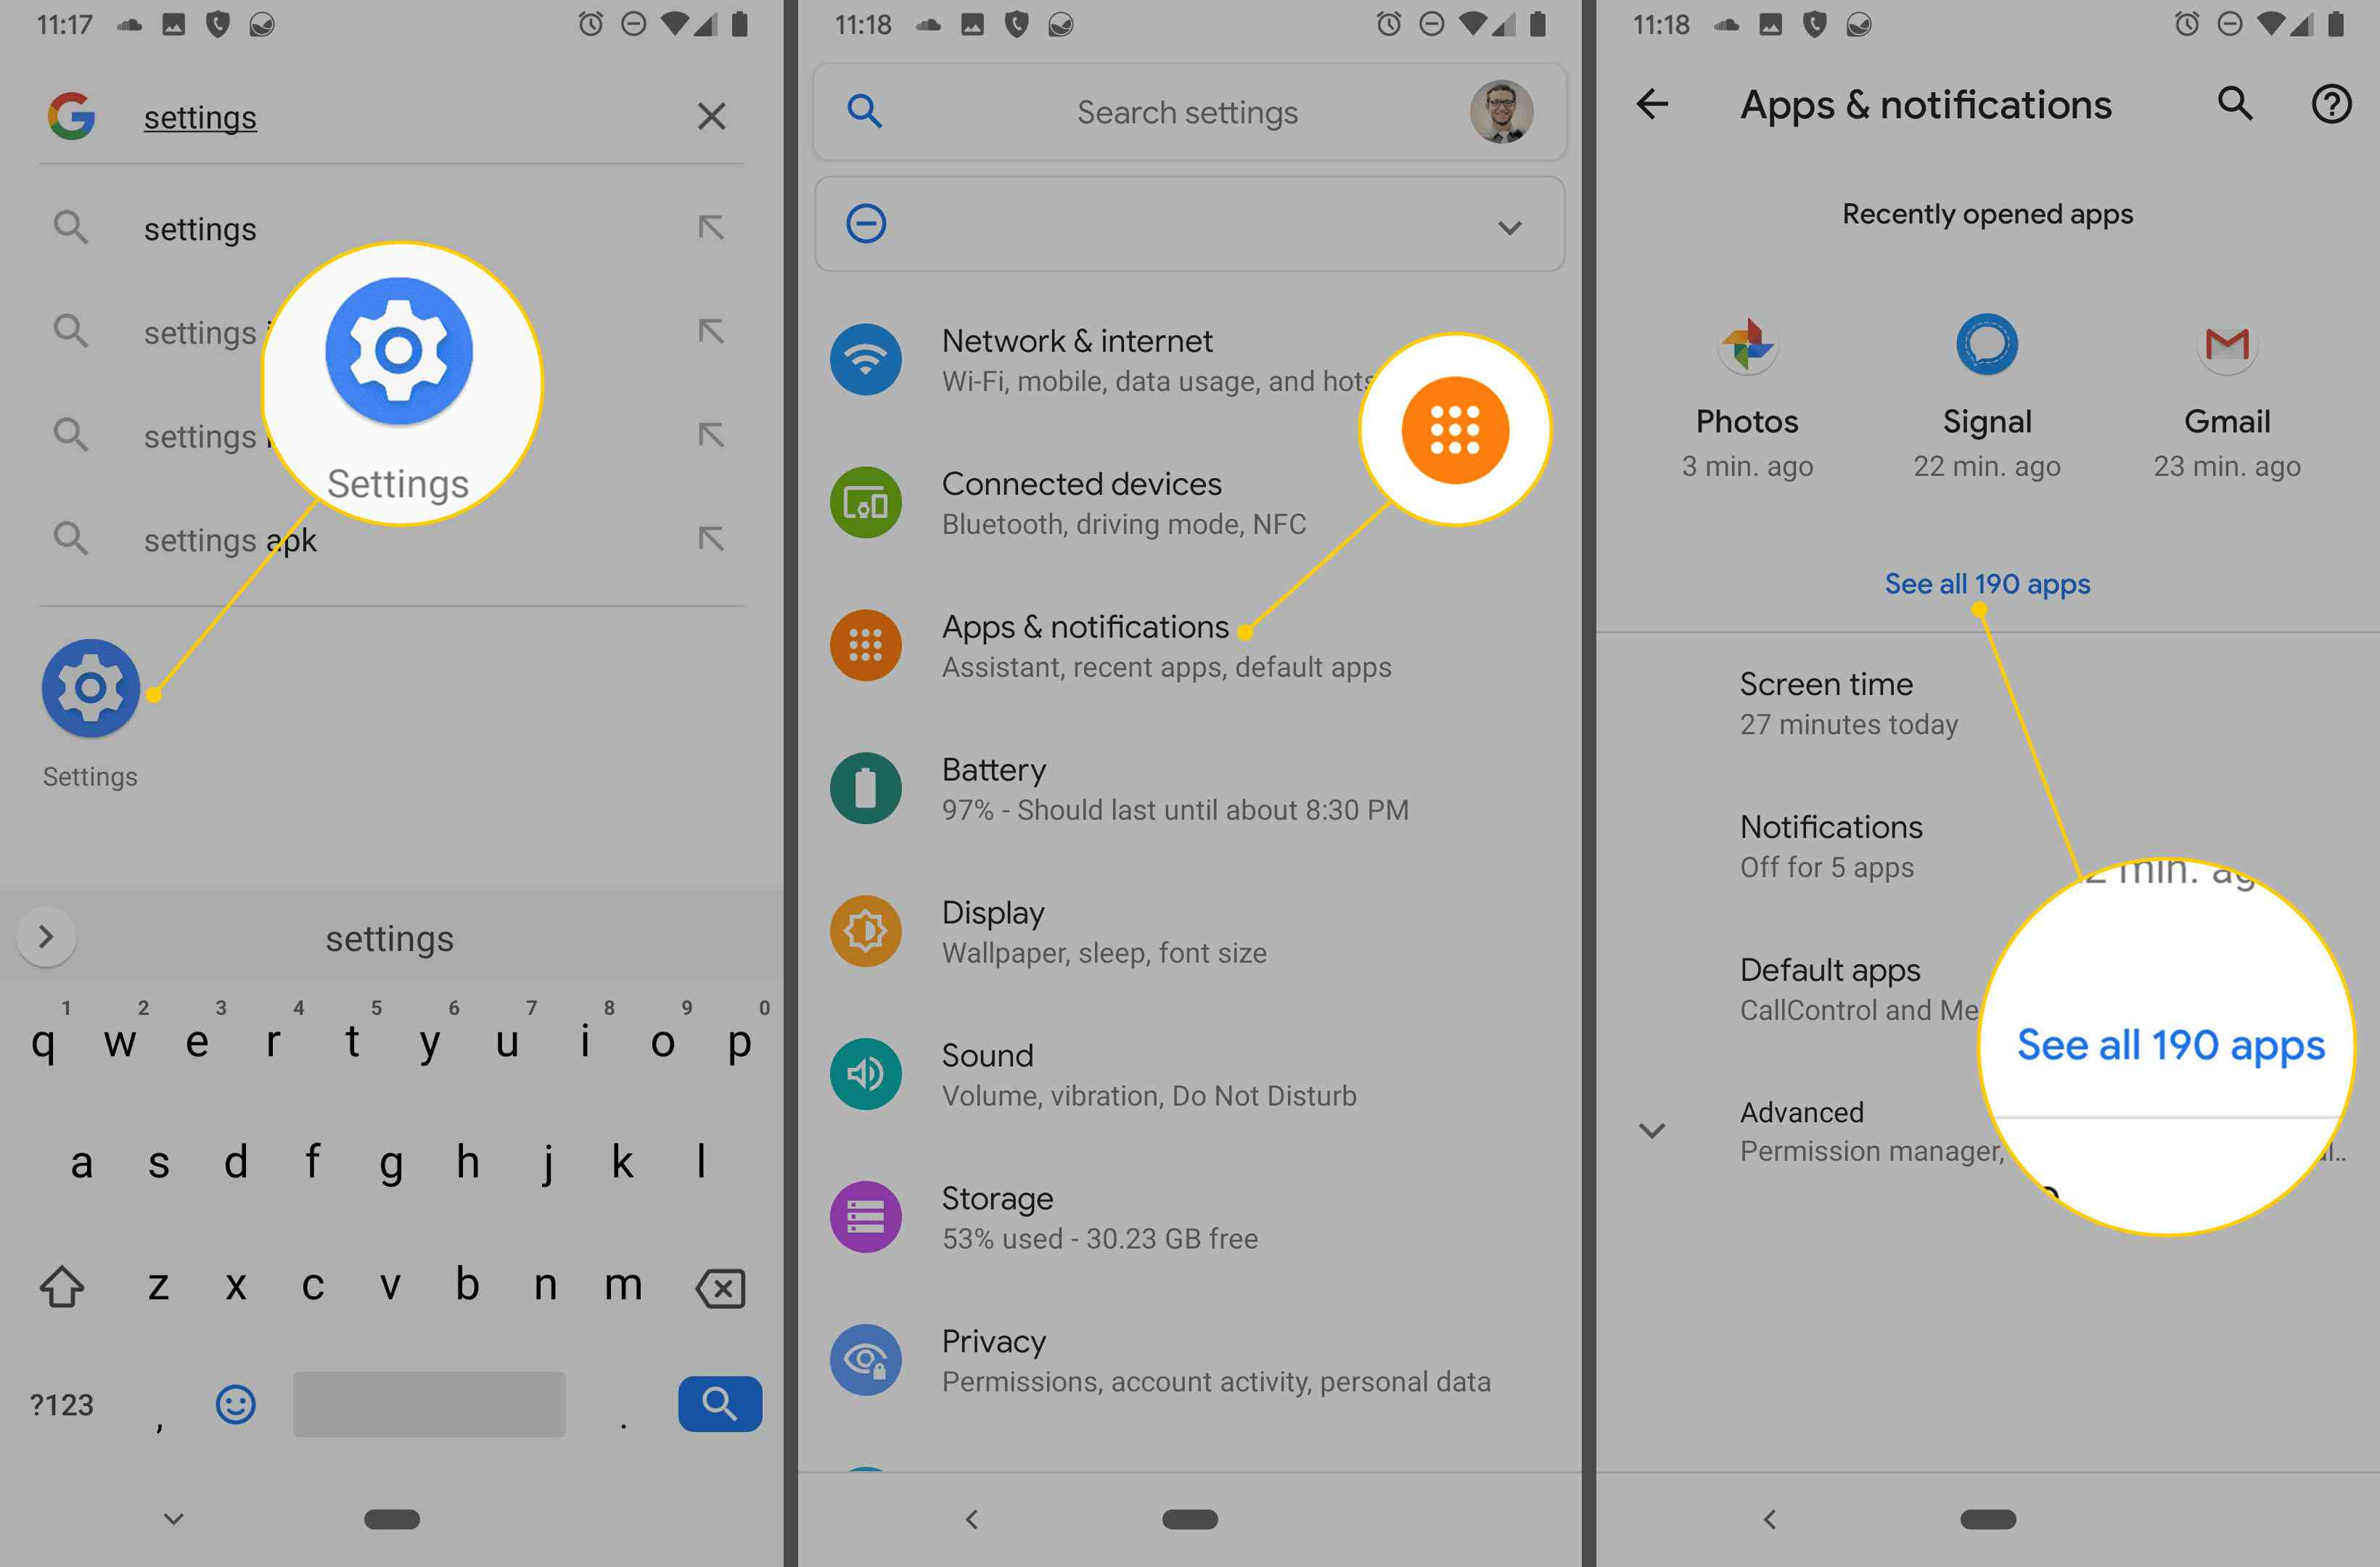 See all apps on an Android phone